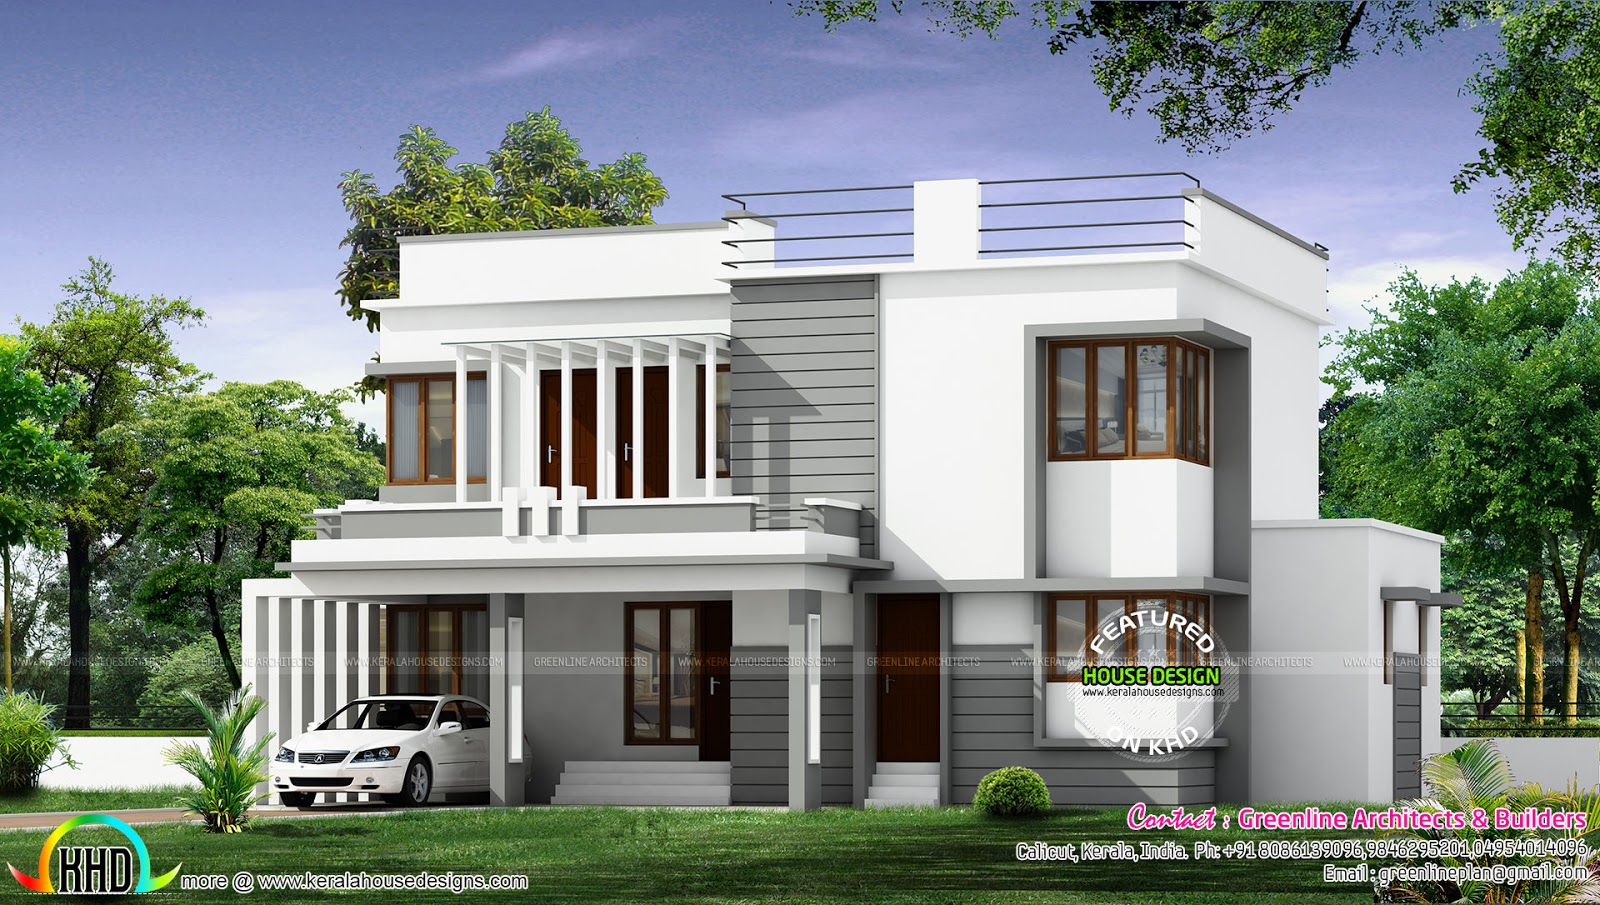 New modern house architecture kerala home design and for Post modern home design